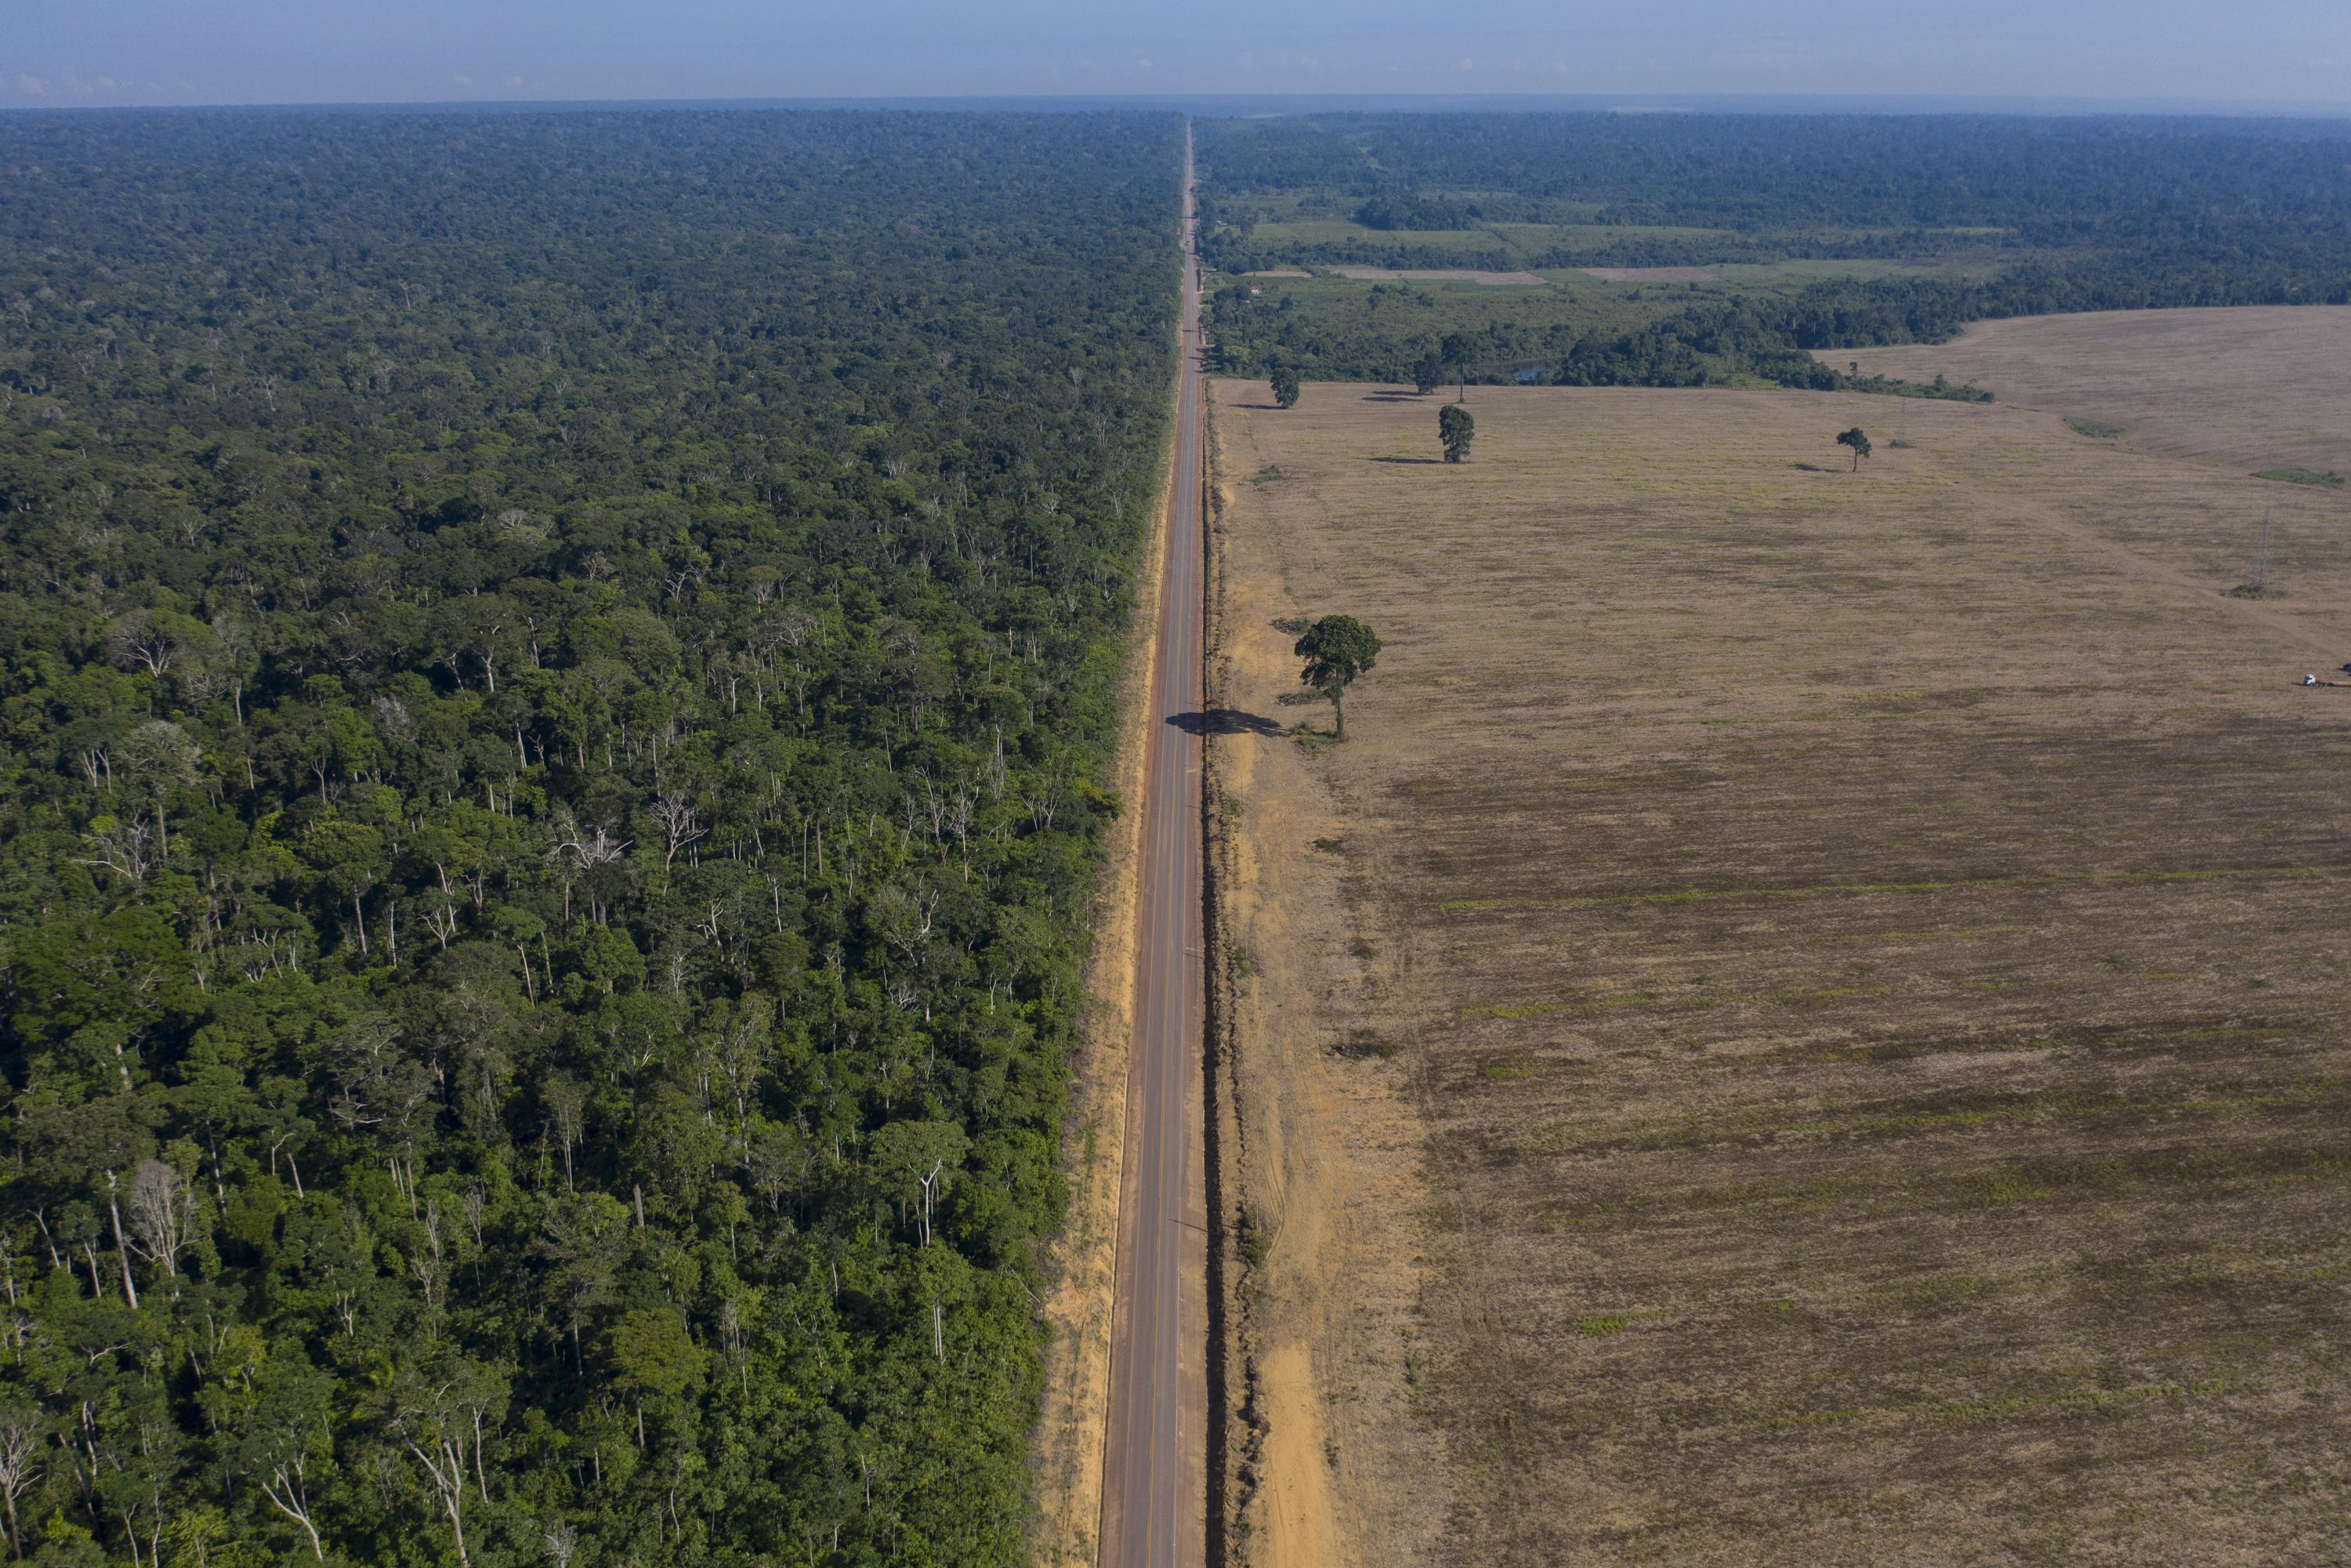 deforestation can include rain forests, as well as woodlands. Brazil S Amazon Deforestation Surged In April After Pledges